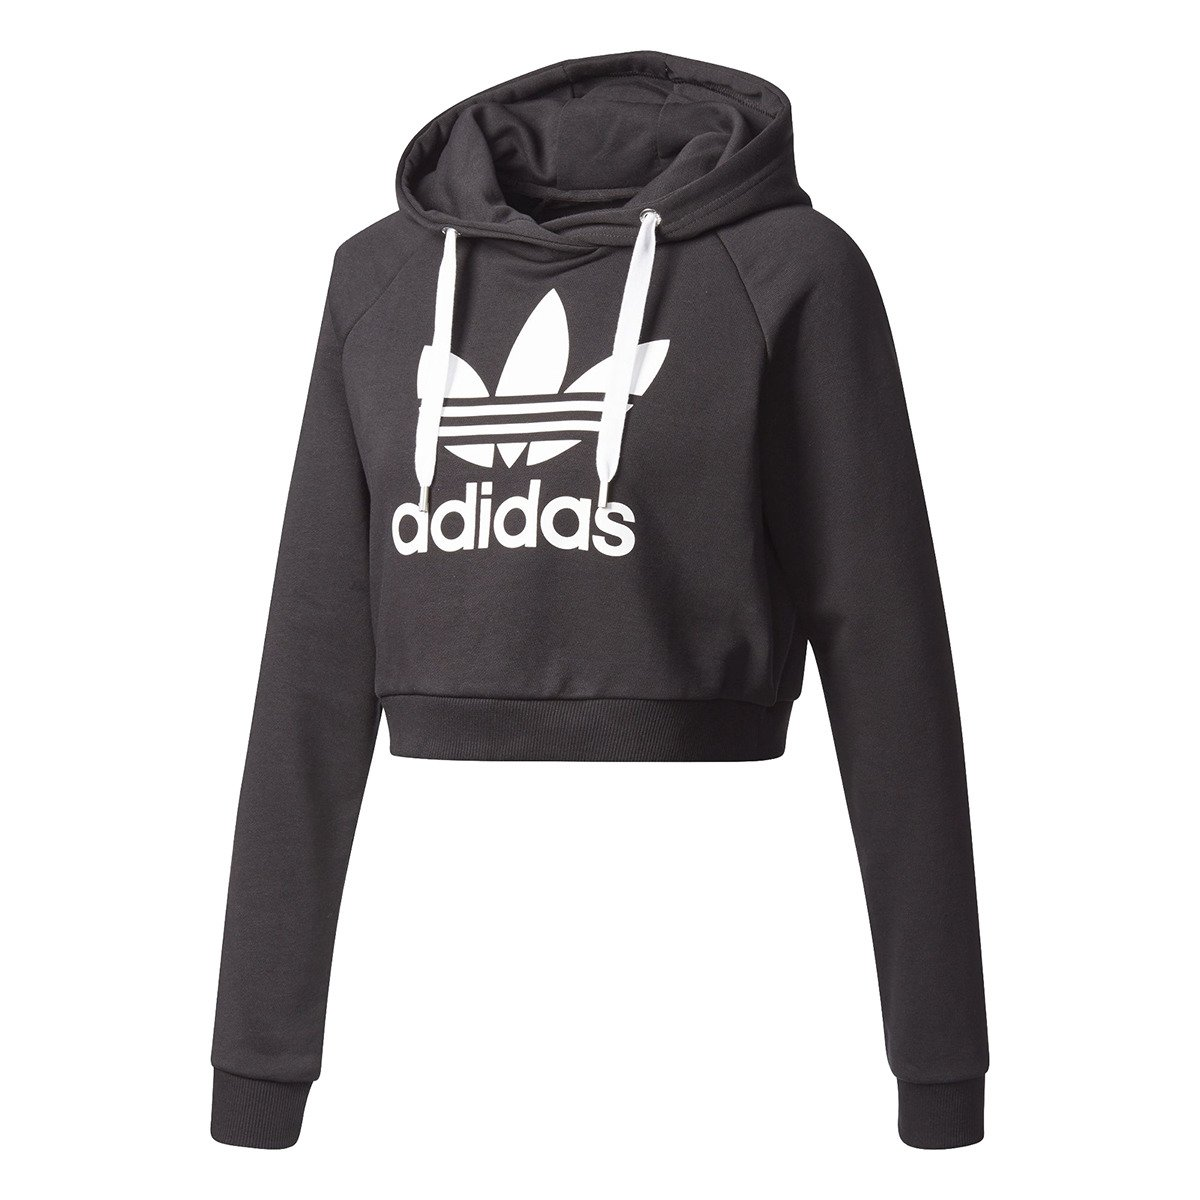 Basketball Bp9478 Clothing Hoodie Crop Originals Adidas Trefoil FqP0xf